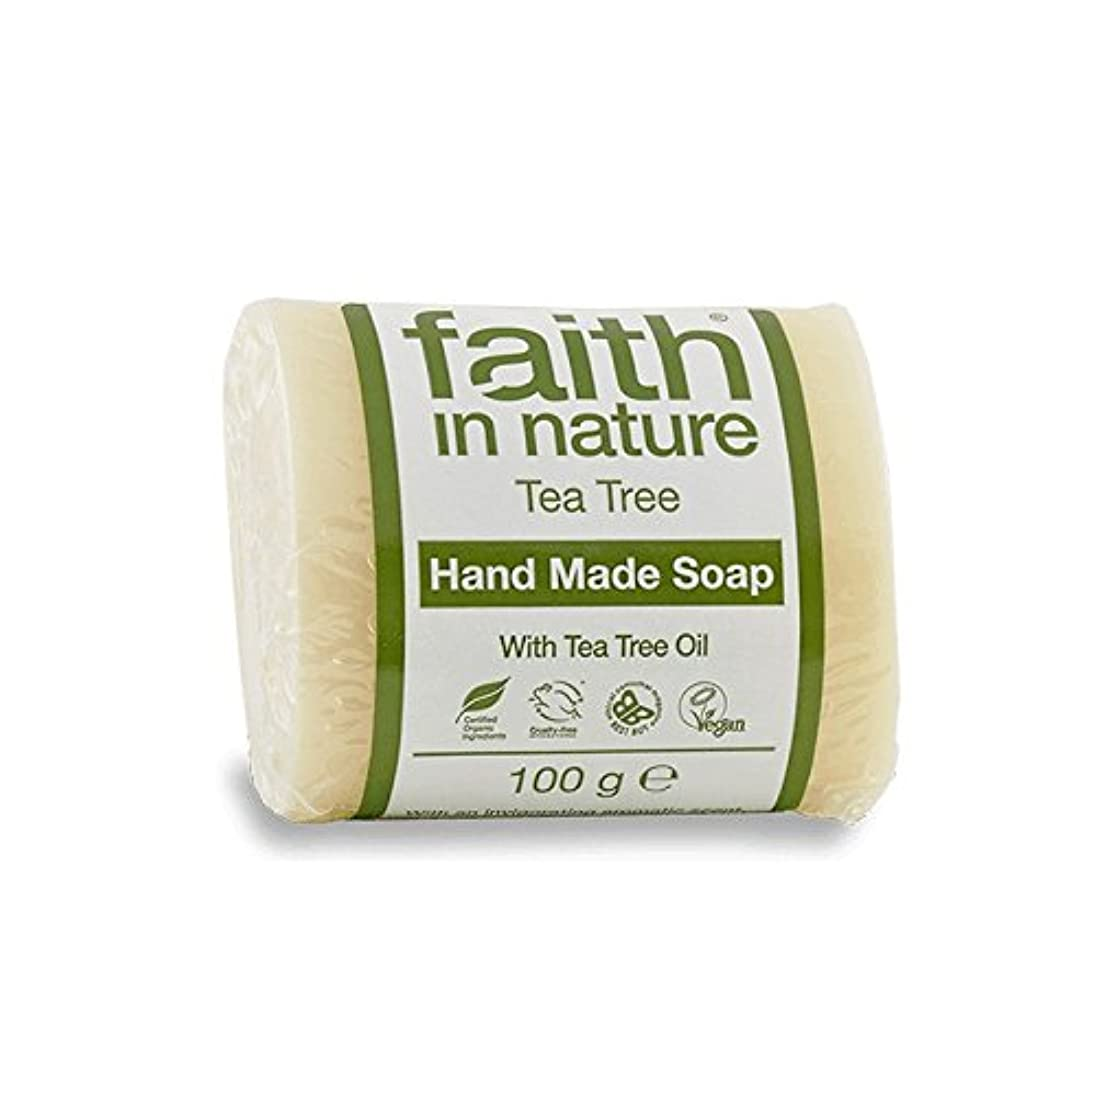 Faith in Nature Tea Tree Soap 100g (Pack of 2) - 自然のティーツリーソープ100グラムの信仰 (x2) [並行輸入品]